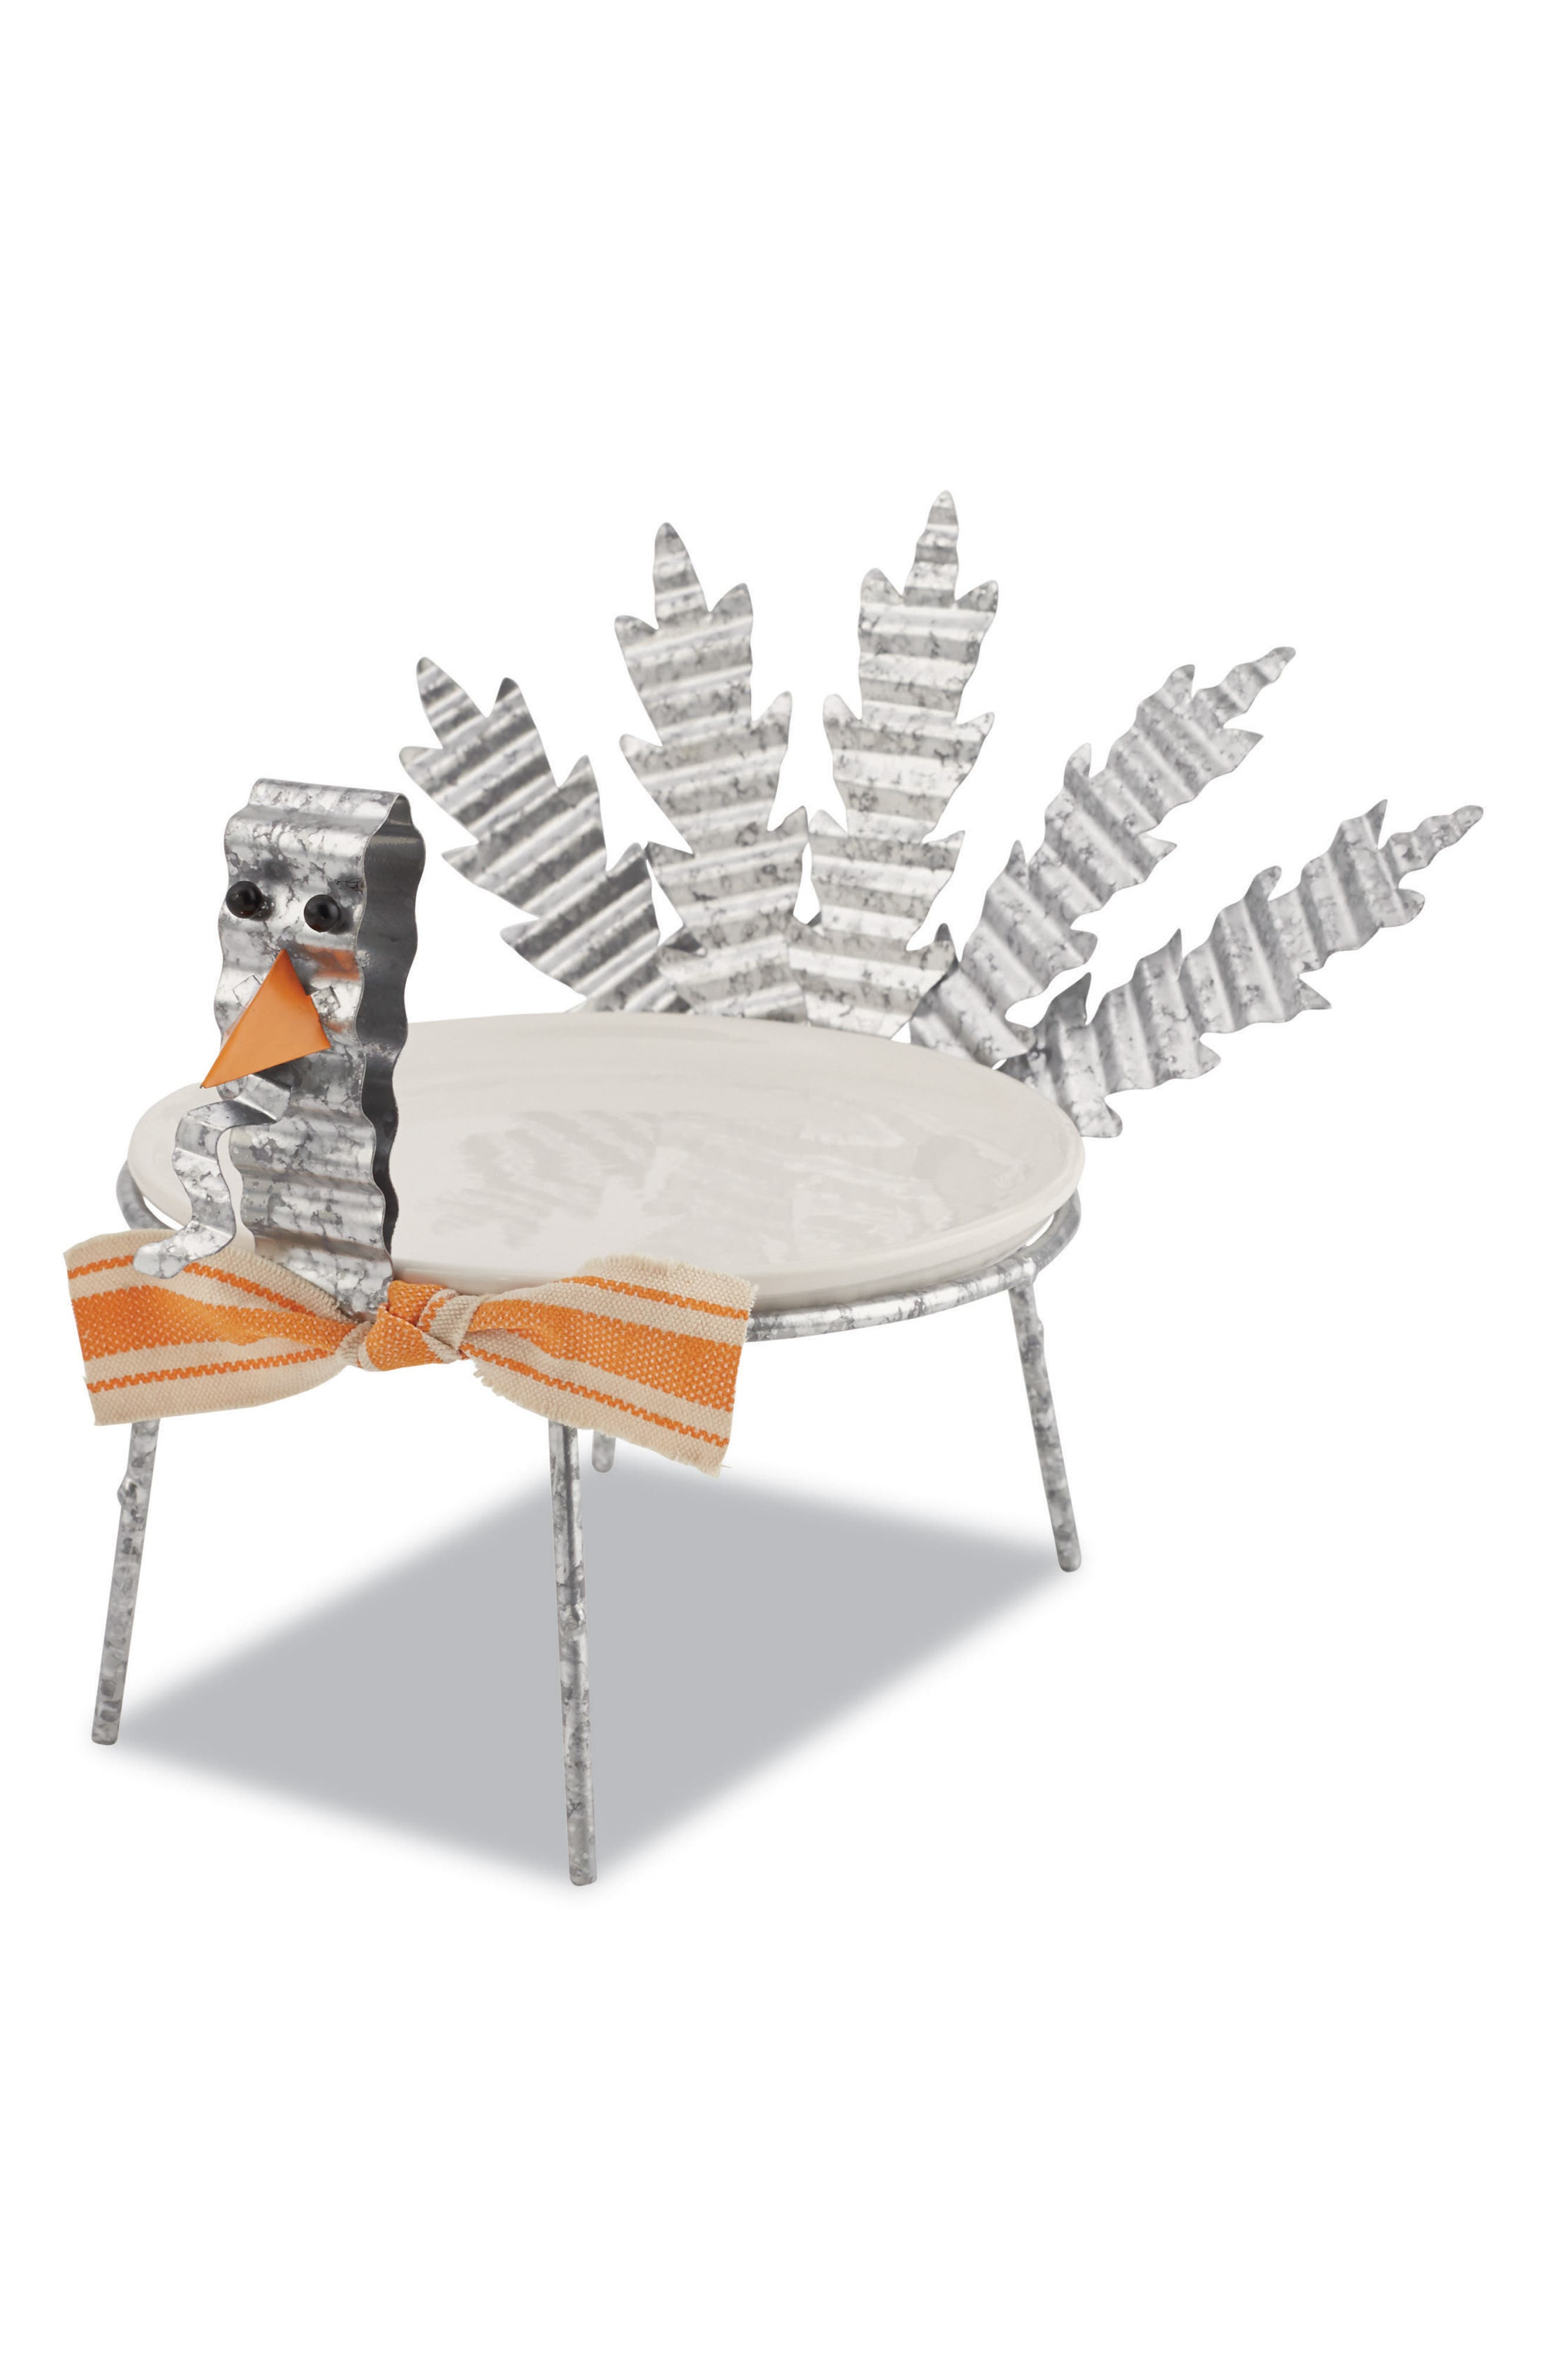 Turkey Plate & Stand Set,                         Main,                         color, Silver